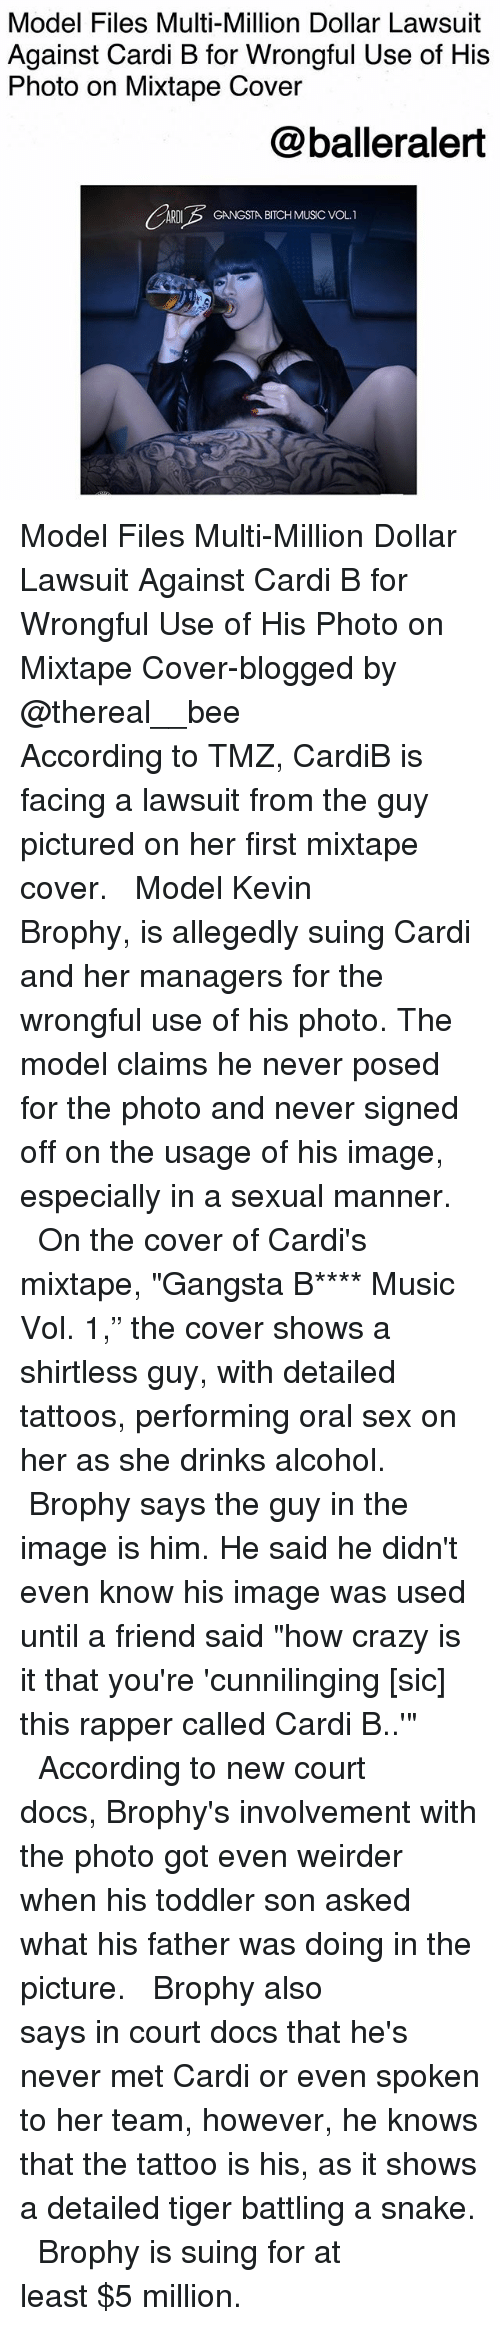 "Bitch, Crazy, and Gangsta: Model Files Multi-Million Dollar Lawsuit  Against Cardi B for Wrongful Use of His  Photo on Mixtape Cover  @balleralert  ARDIGANGSTA BITCH MUSIC VOL.1 Model Files Multi-Million Dollar Lawsuit Against Cardi B for Wrongful Use of His Photo on Mixtape Cover-blogged by @thereal__bee ⠀⠀⠀⠀⠀⠀⠀⠀⠀ ⠀⠀ According to TMZ, CardiB is facing a lawsuit from the guy pictured on her first mixtape cover. ⠀⠀⠀⠀⠀⠀⠀⠀⠀ ⠀⠀ Model Kevin Brophy, is allegedly suing Cardi and her managers for the wrongful use of his photo. The model claims he never posed for the photo and never signed off on the usage of his image, especially in a sexual manner. ⠀⠀⠀⠀⠀⠀⠀⠀⠀ ⠀⠀ On the cover of Cardi's mixtape, ""Gangsta B**** Music Vol. 1,"" the cover shows a shirtless guy, with detailed tattoos, performing oral sex on her as she drinks alcohol. ⠀⠀⠀⠀⠀⠀⠀⠀⠀ ⠀⠀ Brophy says the guy in the image is him. He said he didn't even know his image was used until a friend said ""how crazy is it that you're 'cunnilinging [sic] this rapper called Cardi B..'"" ⠀⠀⠀⠀⠀⠀⠀⠀⠀ ⠀⠀ According to new court docs, Brophy's involvement with the photo got even weirder when his toddler son asked what his father was doing in the picture. ⠀⠀⠀⠀⠀⠀⠀⠀⠀ ⠀⠀ Brophy also says in court docs that he's never met Cardi or even spoken to her team, however, he knows that the tattoo is his, as it shows a detailed tiger battling a snake. ⠀⠀⠀⠀⠀⠀⠀⠀⠀ ⠀⠀ Brophy is suing for at least $5 million."